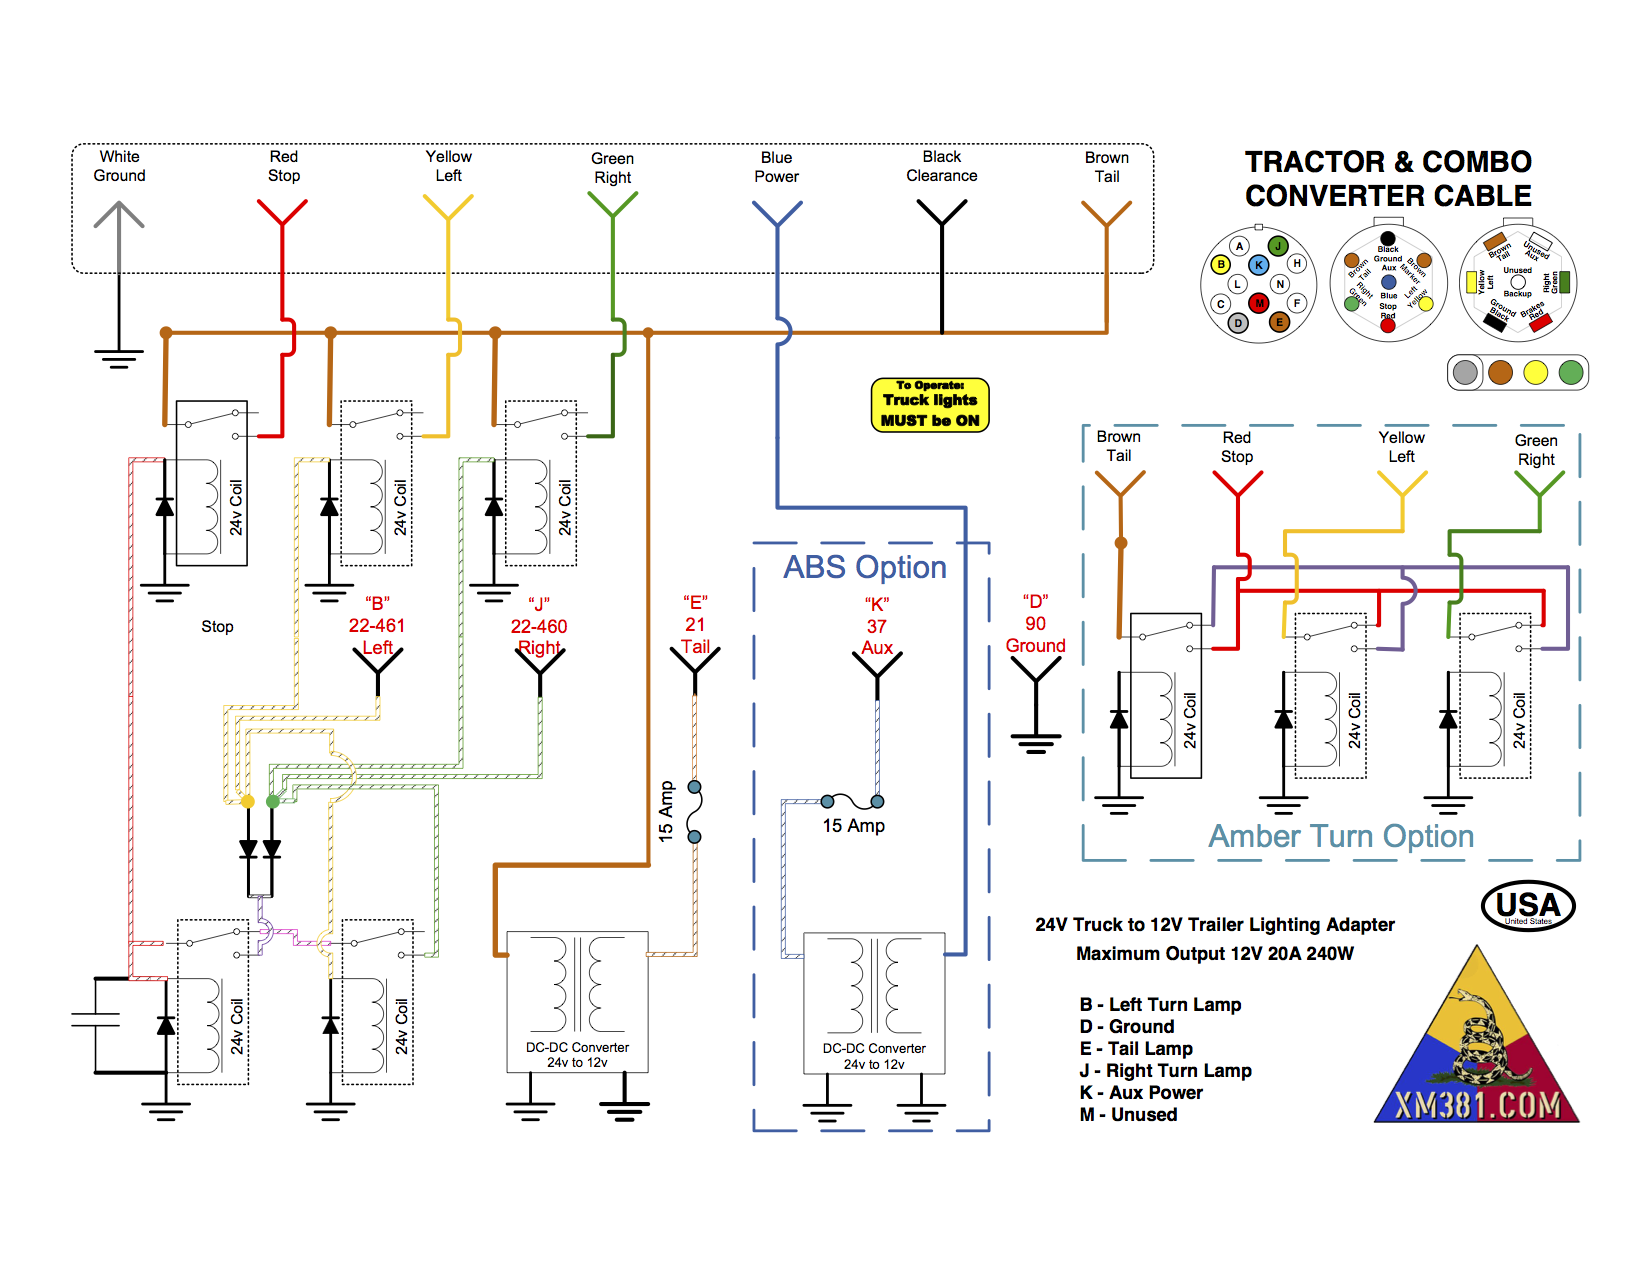 Civi Light Plans Tractor m35a2 wiring diagram boat trailer wiring diagram \u2022 free wiring 7 pin tractor trailer wiring diagram at pacquiaovsvargaslive.co